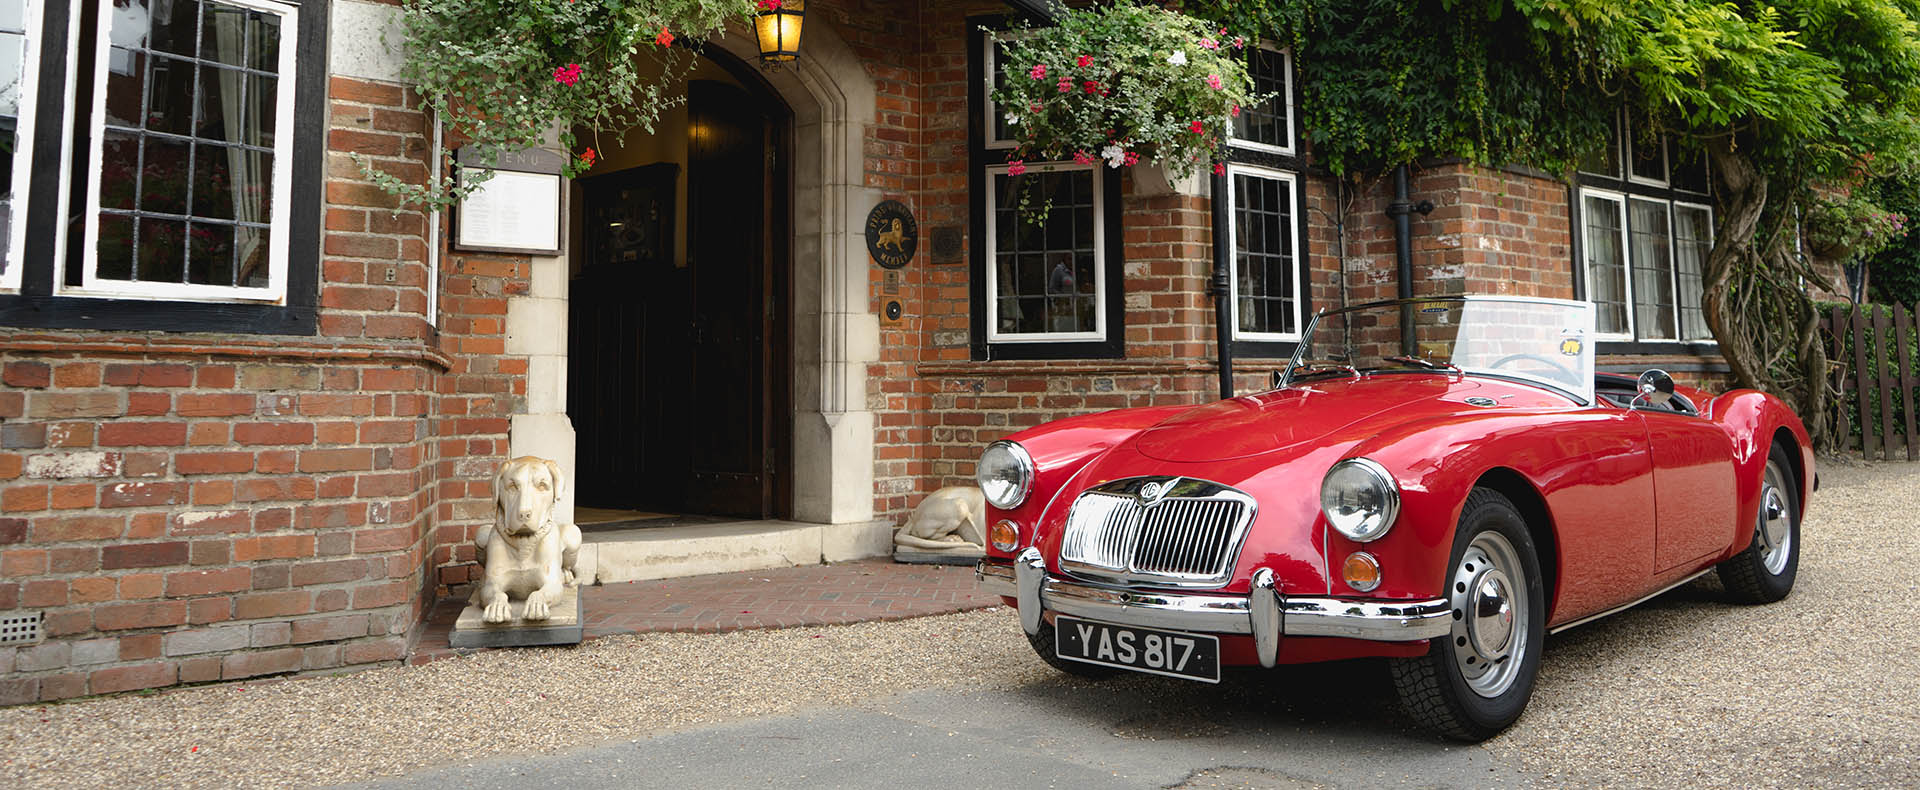 Luxury Short Breaks | Montagu Arms Hotel | New Forest